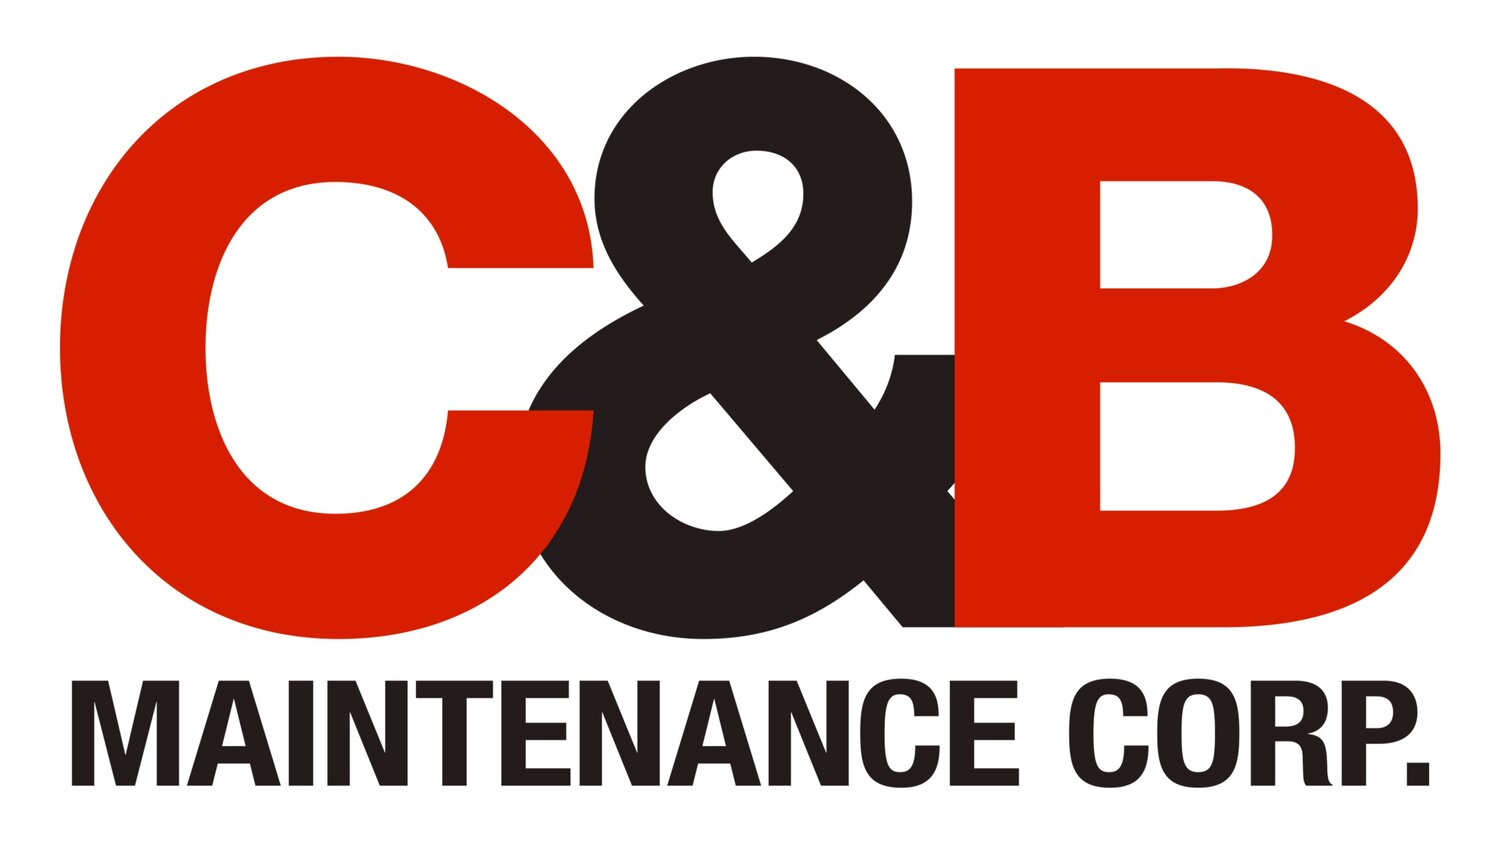 C&B Maintenance Corp.